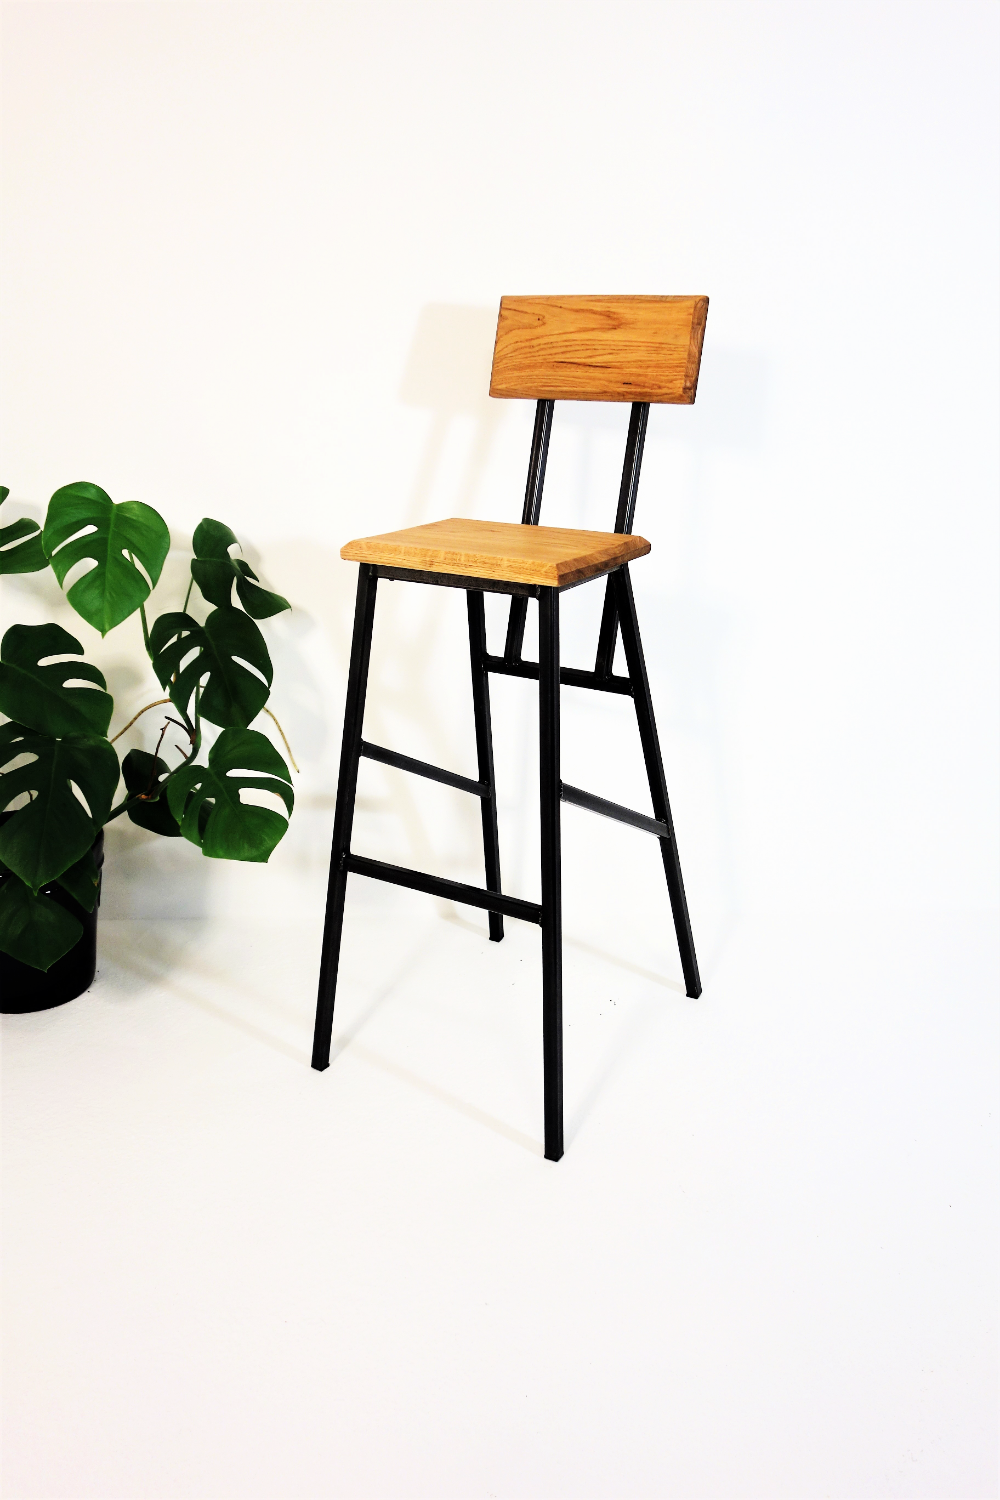 24 7 Retro Industrial Style Bar Stool With Backrest Bar Stools